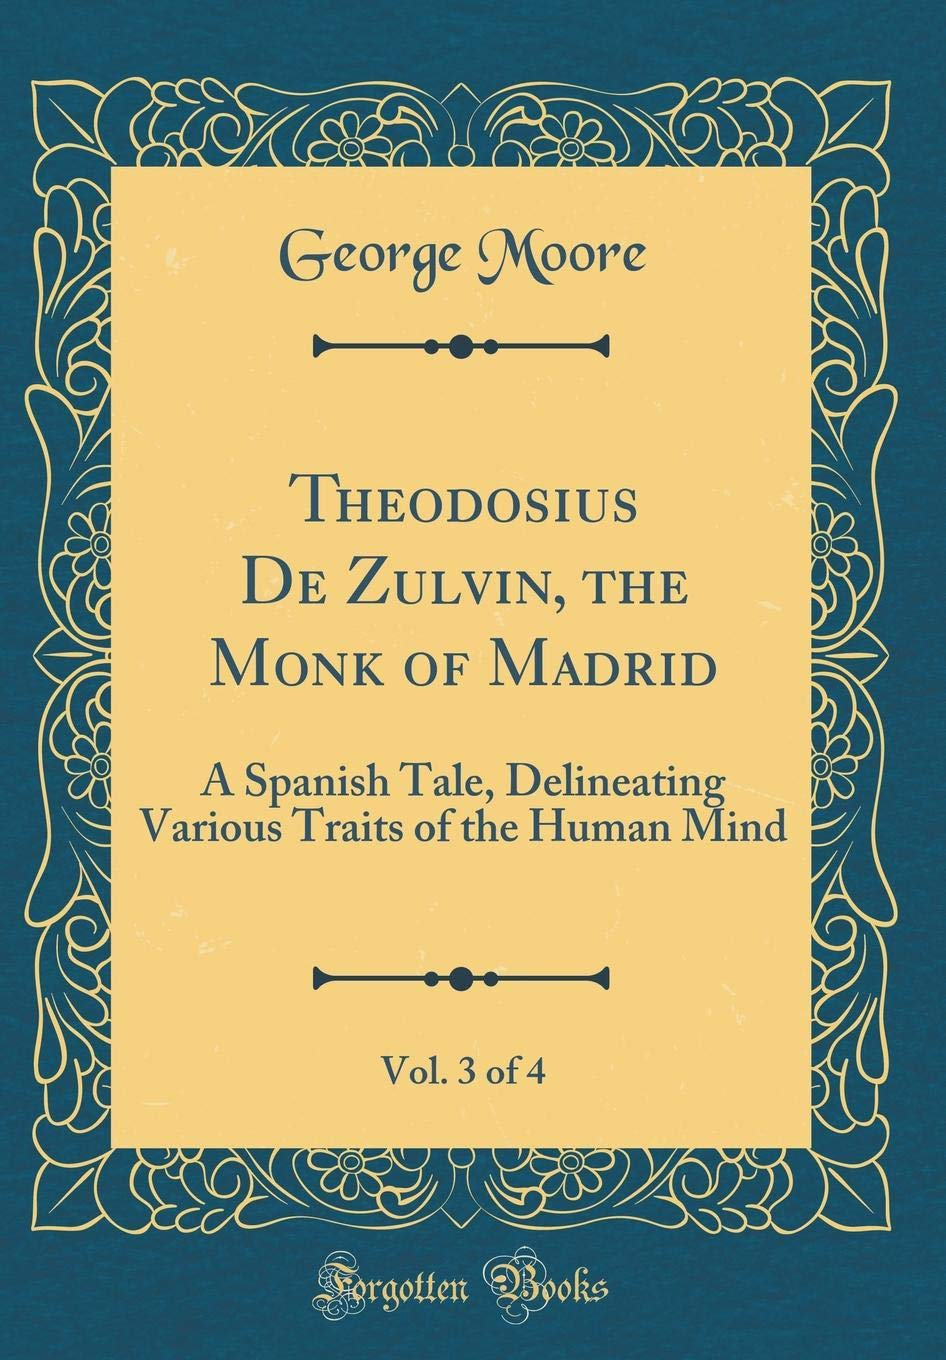 Theodosius De Zulvin, the Monk of Madrid, Vol. 3 of 4: A Spanish Tale, Delineating Various Traits of the Human Mind (Classic Reprint) pdf